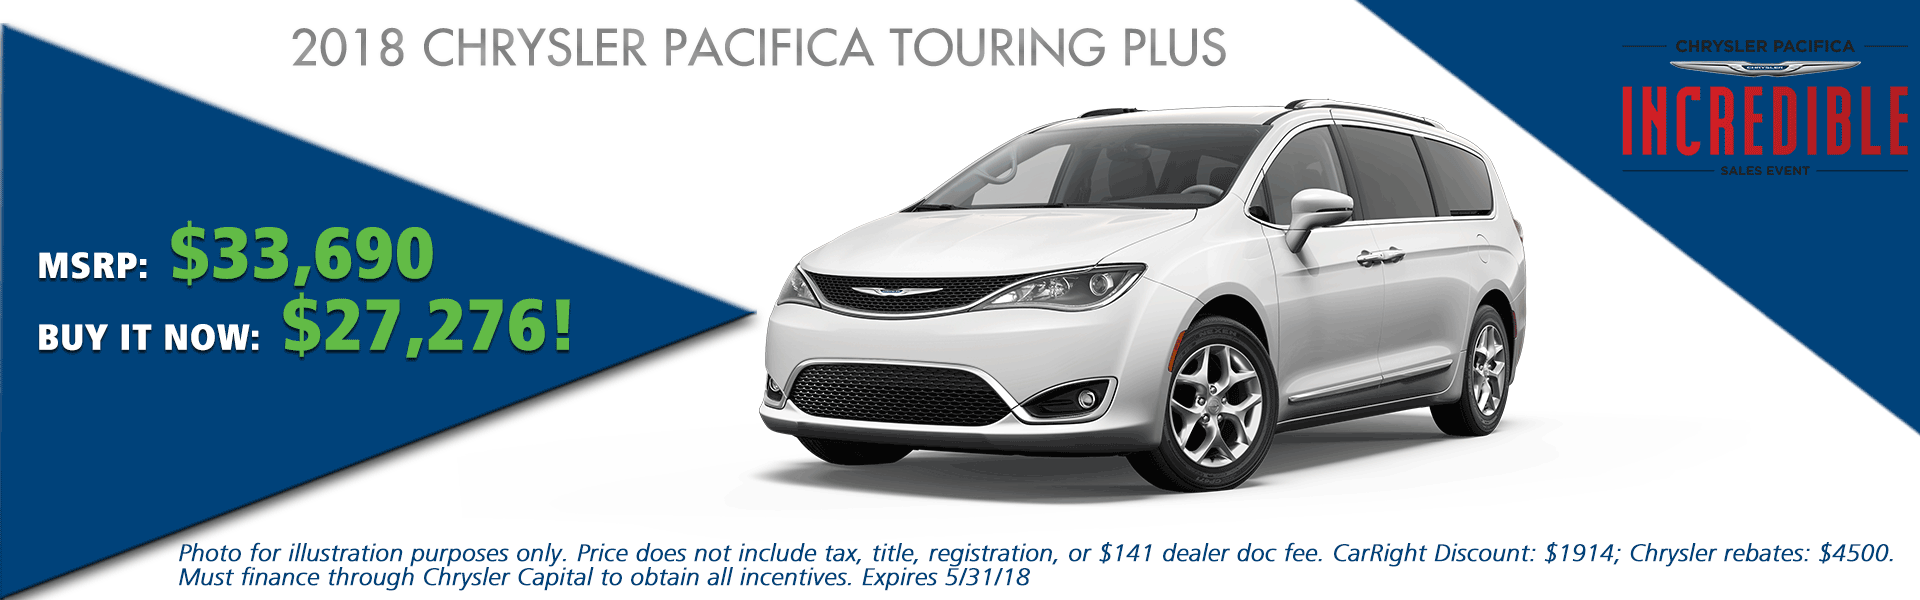 NEW 2018 CHRYSLER PACIFICA TOURING PLUS CarRight Chrysler Jeep Dodge Ram Fuso moon, pittsburgh, sewickley, pennsylvania.